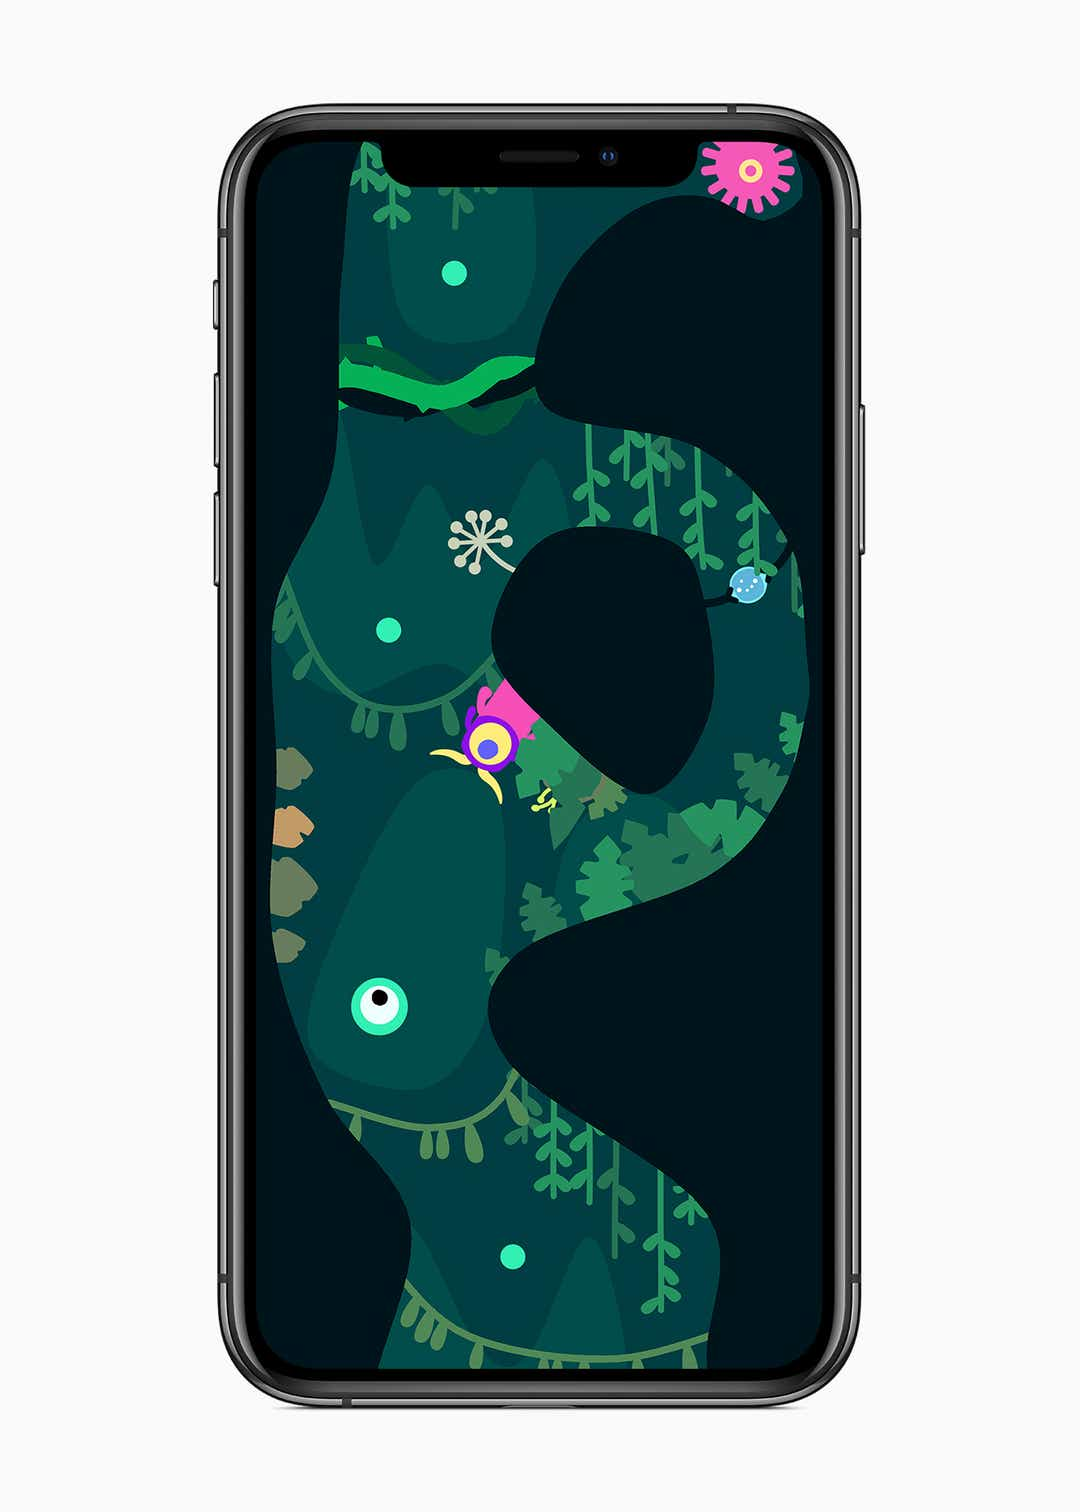 Games top Apple's Design Awards for best apps of the year, given at WWDC